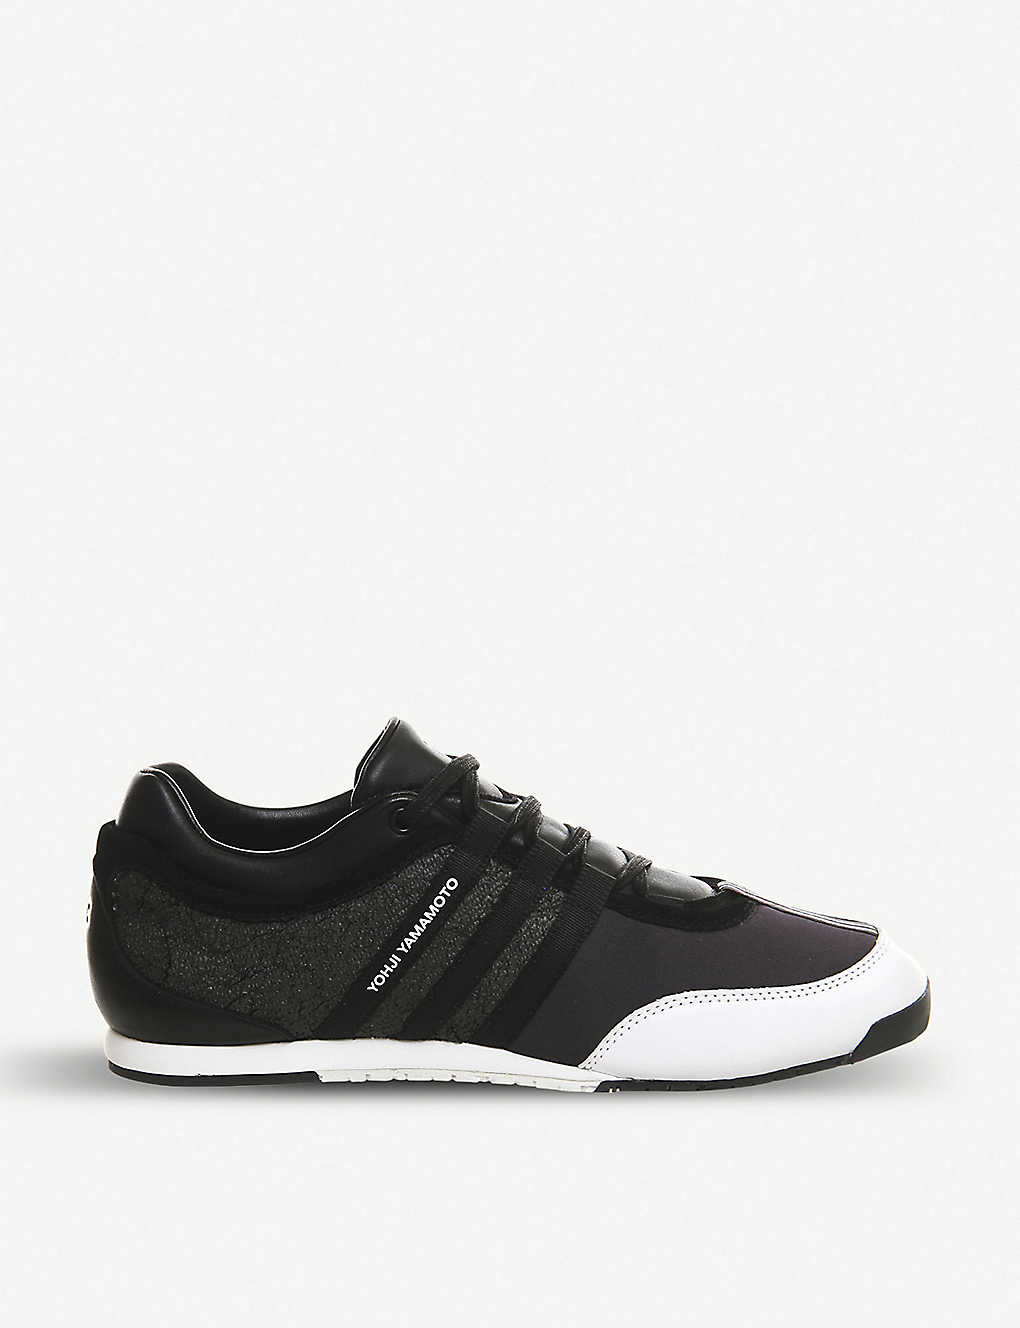 191a5b6874d5 ADIDAS Y3 - Y3 Boxing leather sneakers